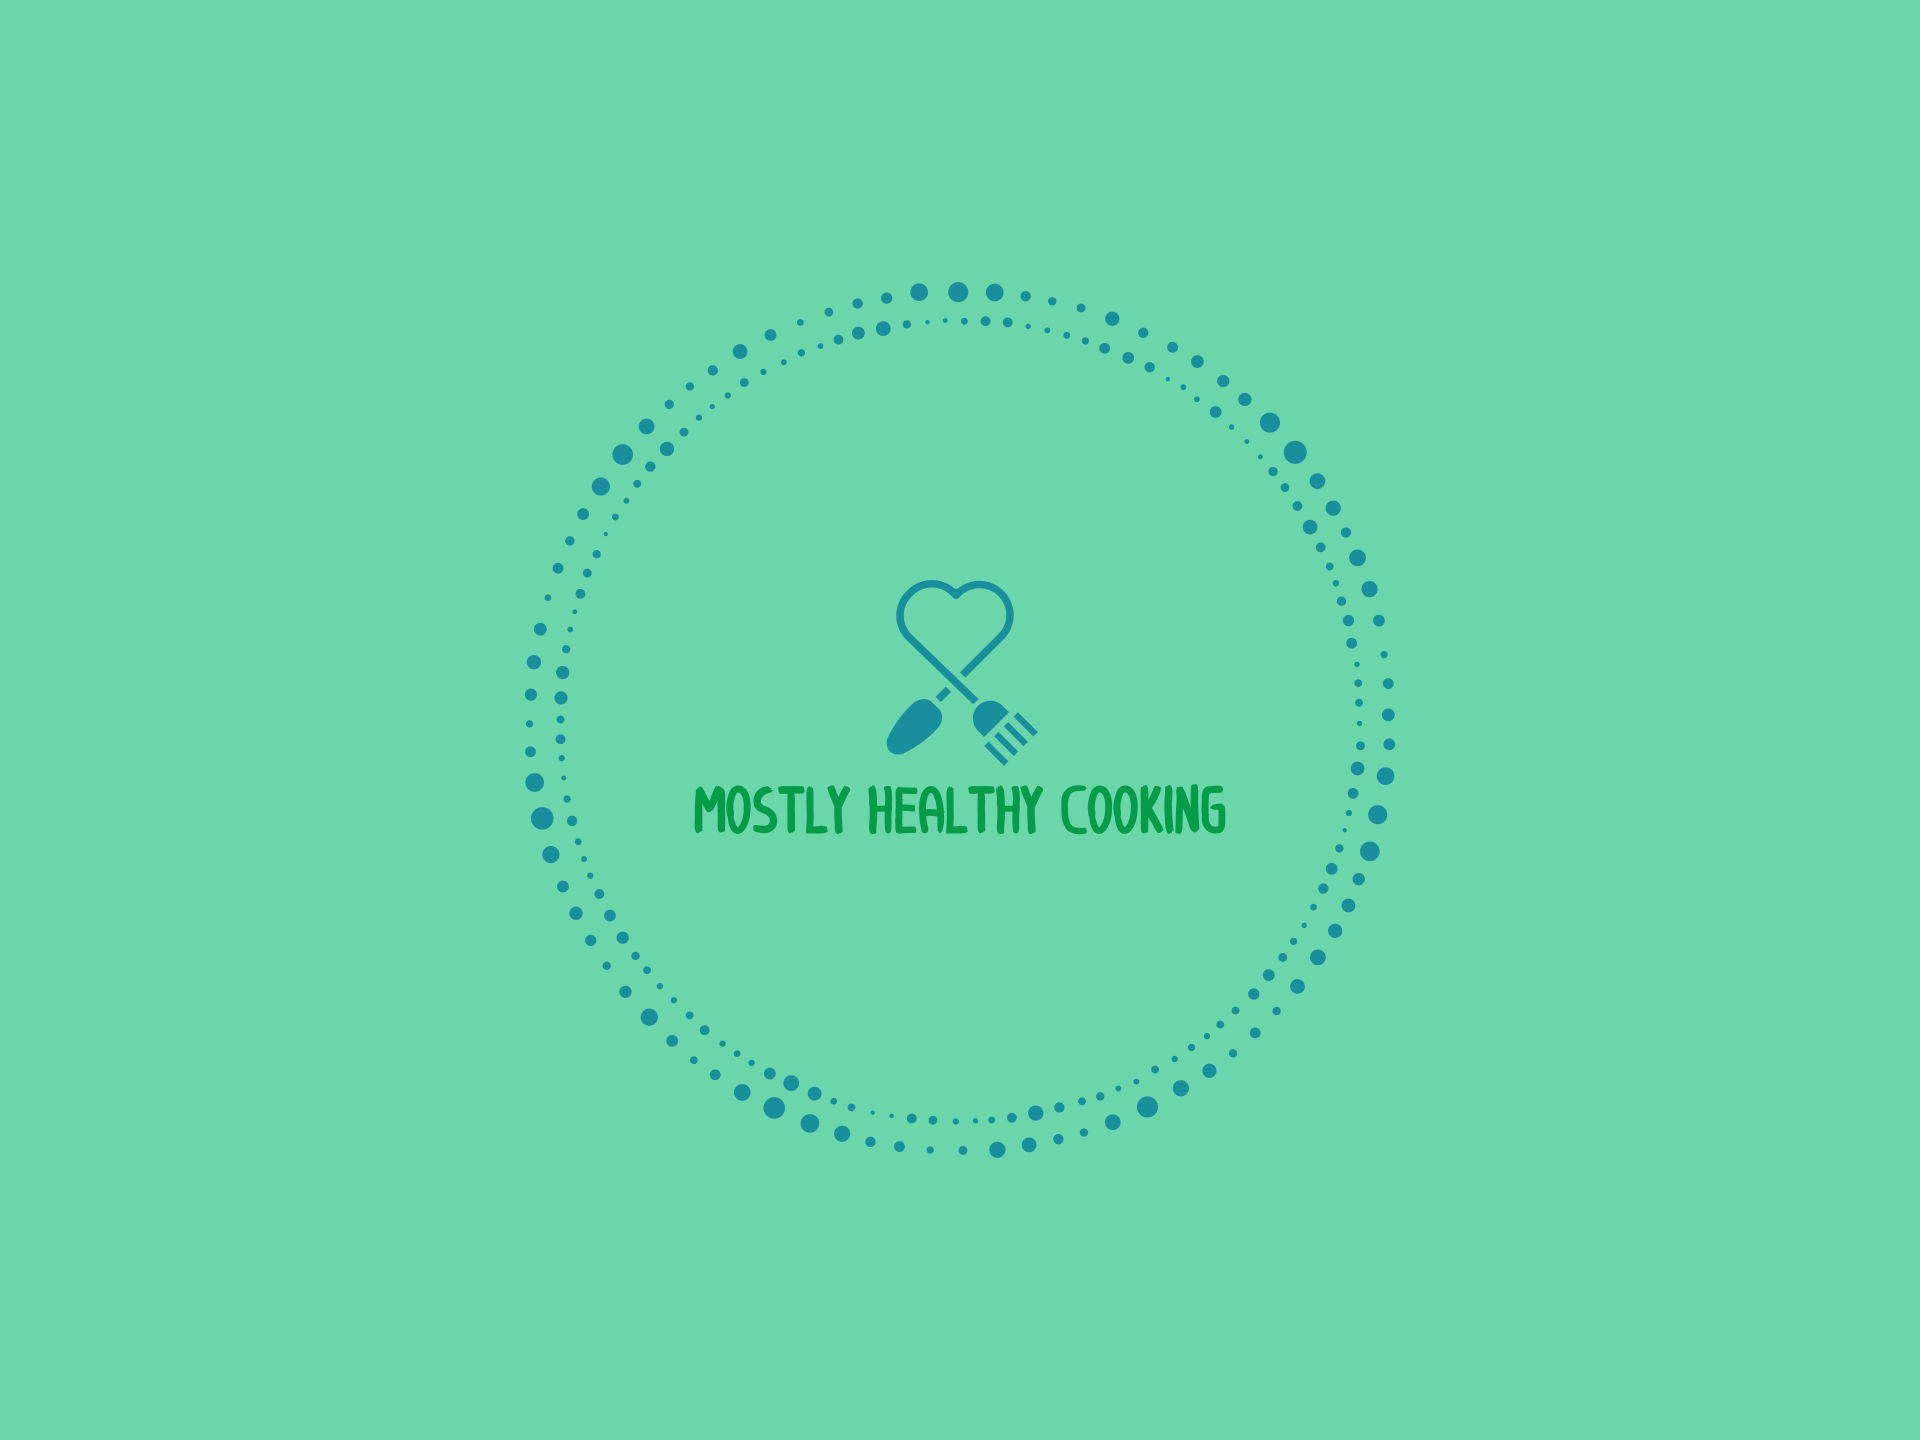 Mostly Healthy Cooking Logo